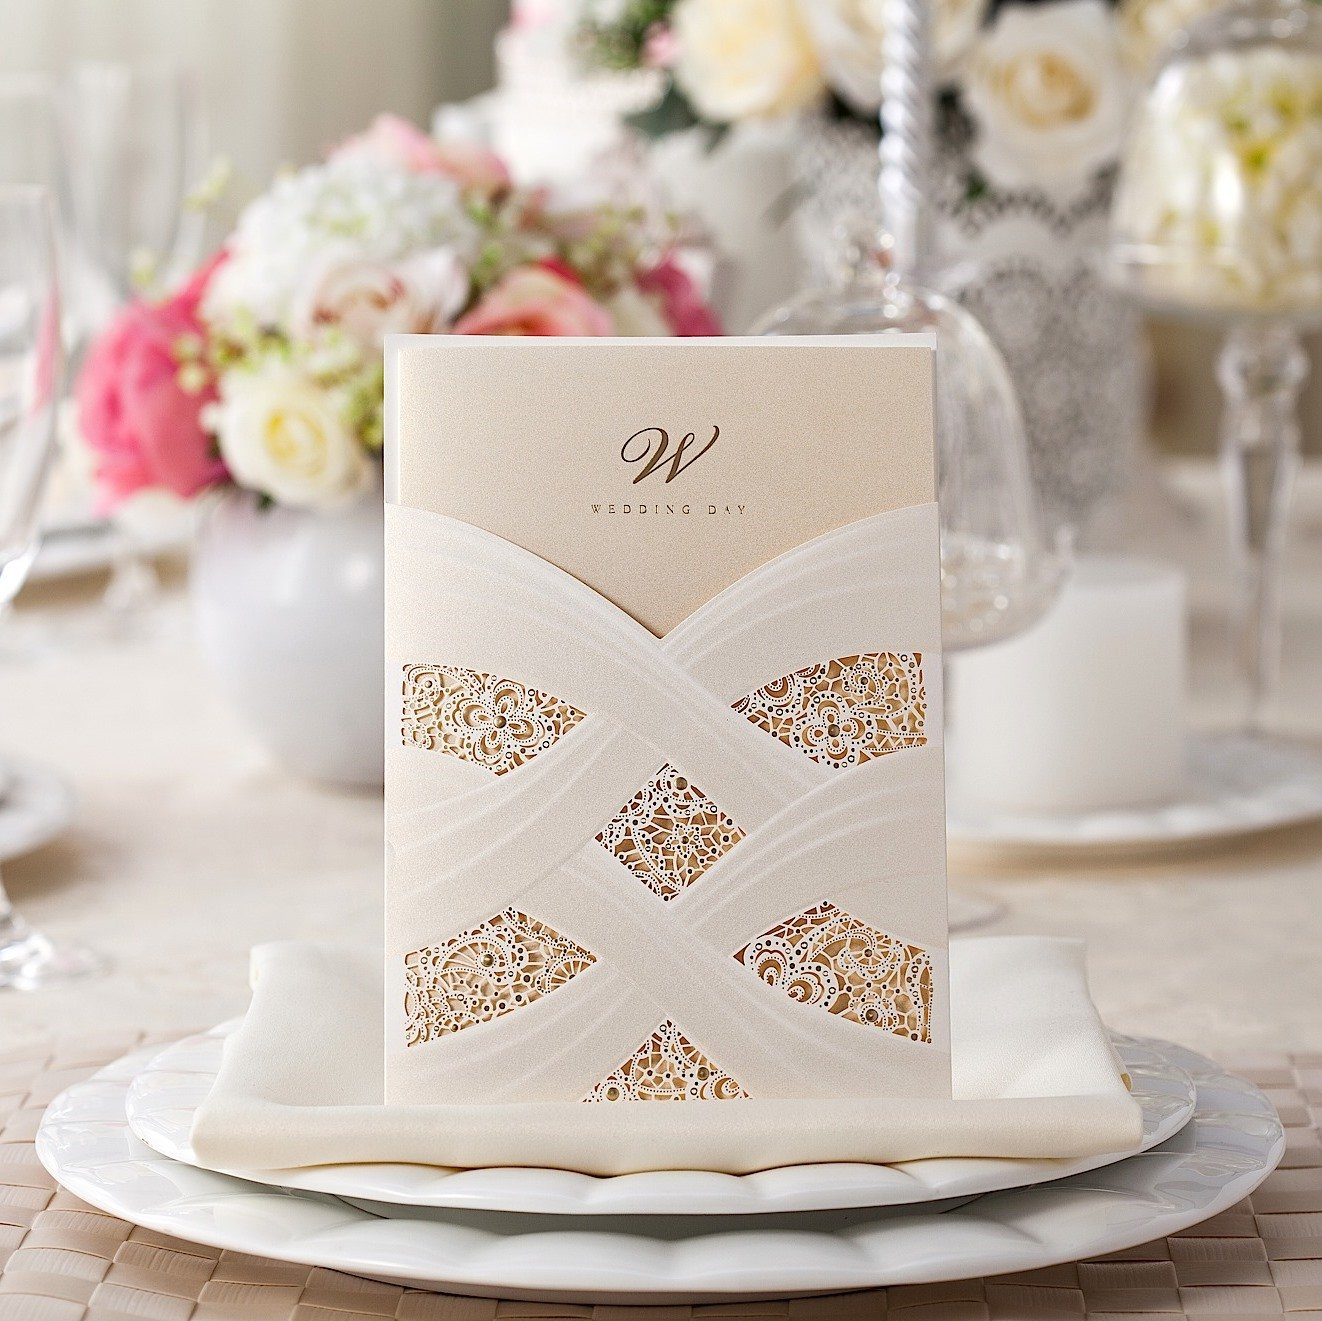 Wishmade 100X Laser Cut Lace Wedding Invitations Cards Kit With White Envelope and Seals CW060 by Wishmade